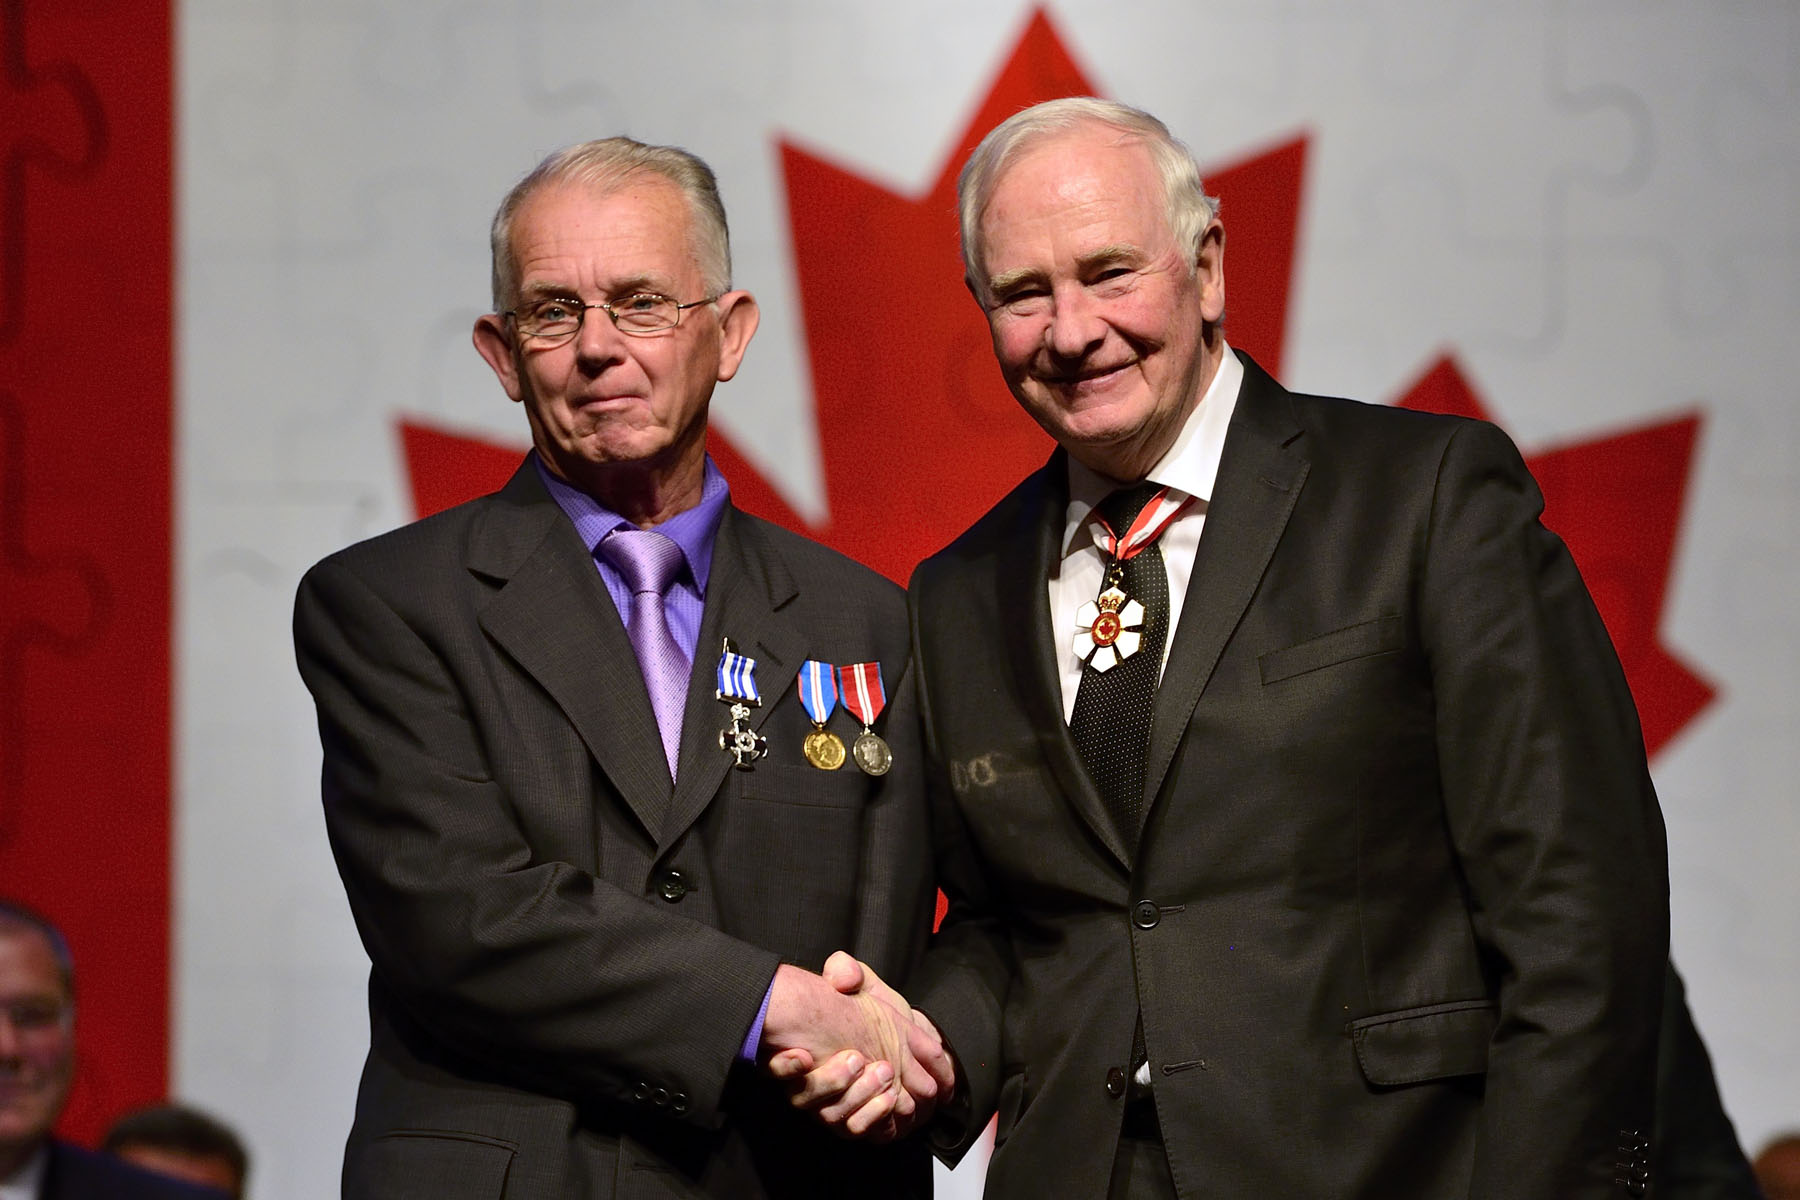 The Meritorious Service Cross (Civil Division) was presented to Paul A. Young, M.S.C. With great determination, Mr. Young works to generate awareness of the issues facing people with a disability. Drawing purpose from his own battle with cerebral palsy, he helped found People First Nova Scotia to seek social justice and equality. He went on to serve as national president of People First of Canada, where he helped grow the organization and became well known for speaking out for disability rights.